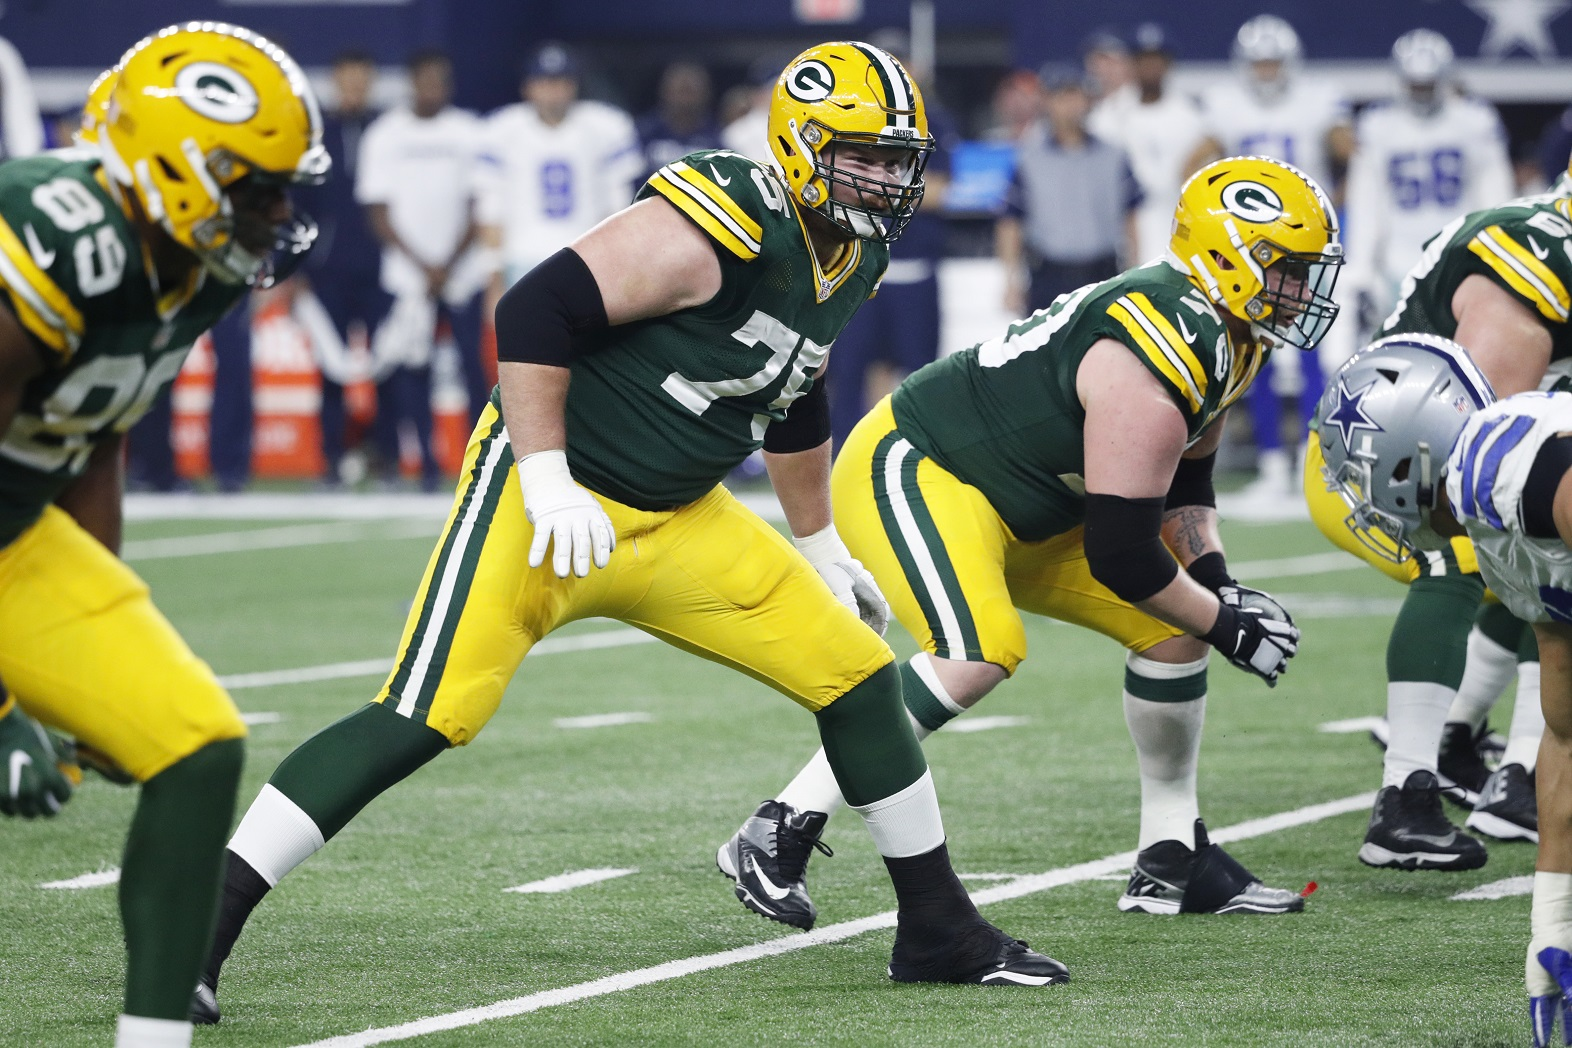 Bulaga latest injured Packer, team practicing 'next man up' mentality